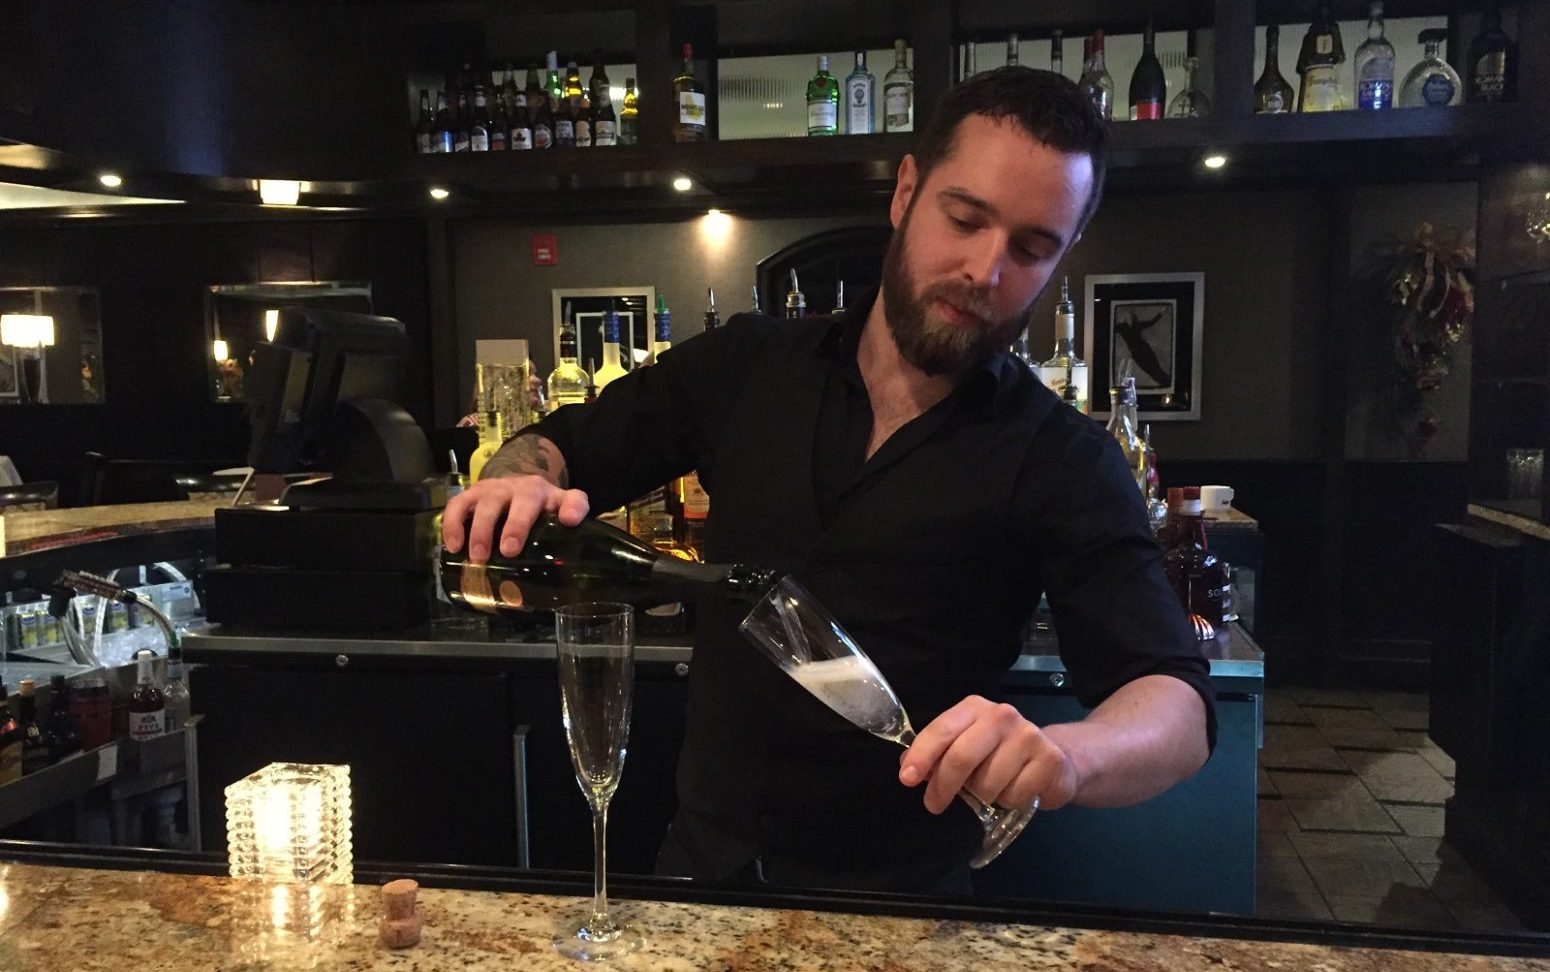 Jonny Reff, bartender at the 31 Club, said the glass should be held at a 45-degree angle when pouring champagne. (Elizabeth Carey/Special to The News)